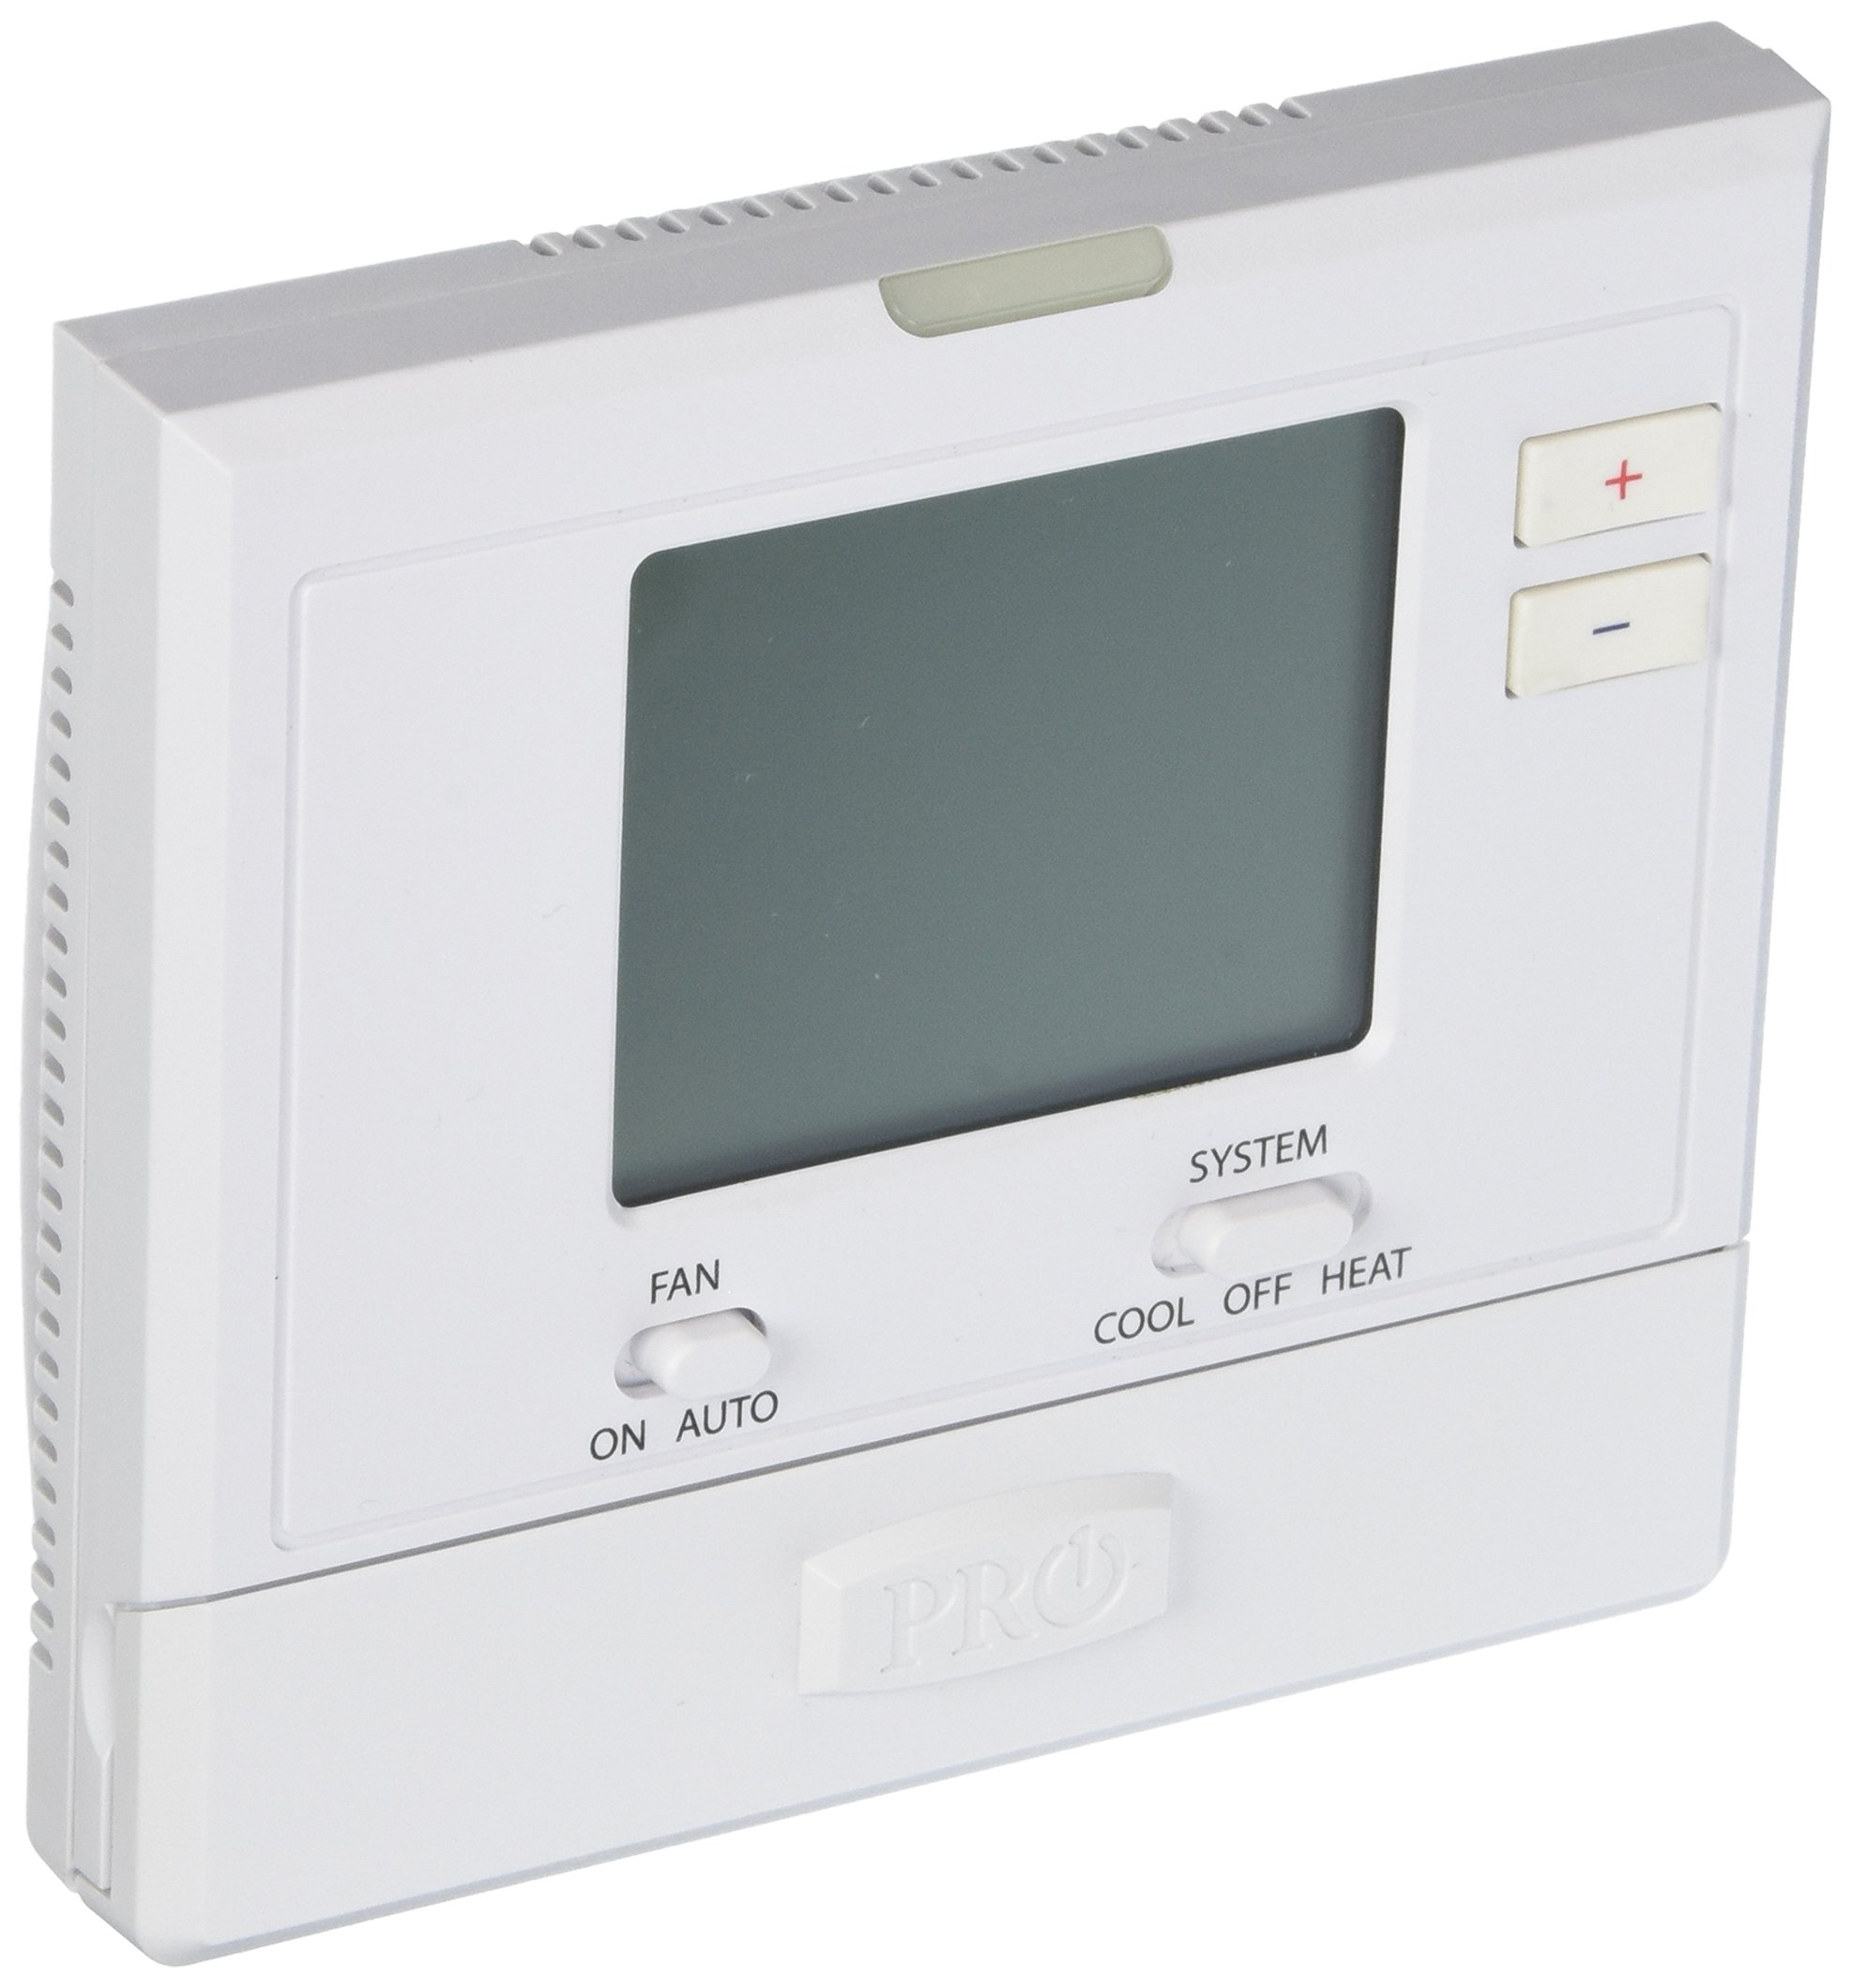 PRO1 IAQ T701 Non-Programmable Electronic Thermostat product image